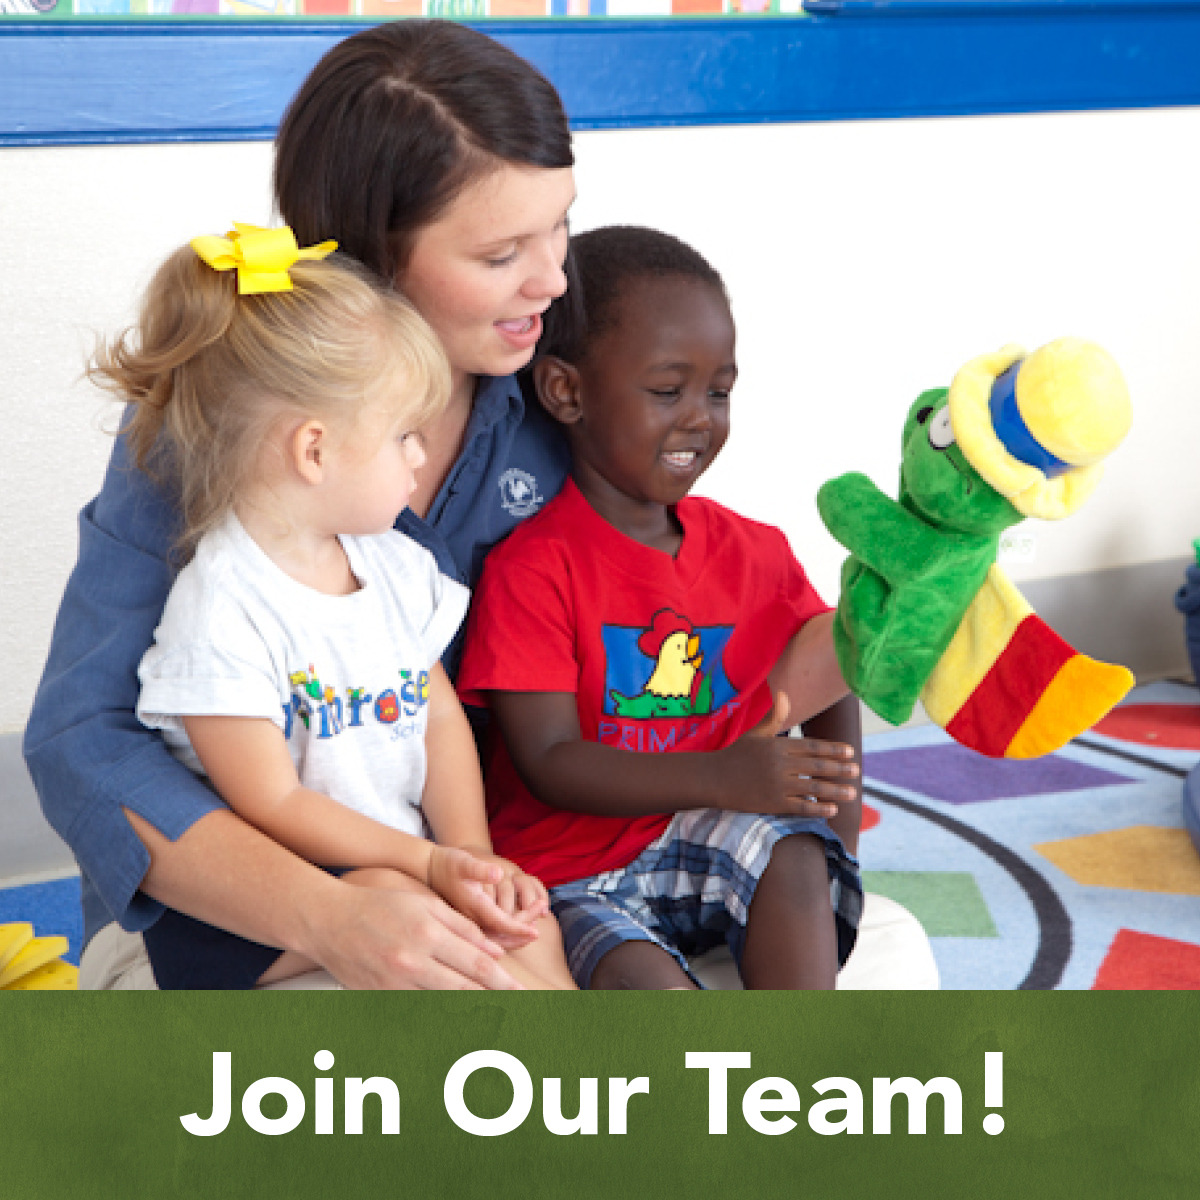 Join Our Team Primrose School Of Mount Pleasant Preschool And